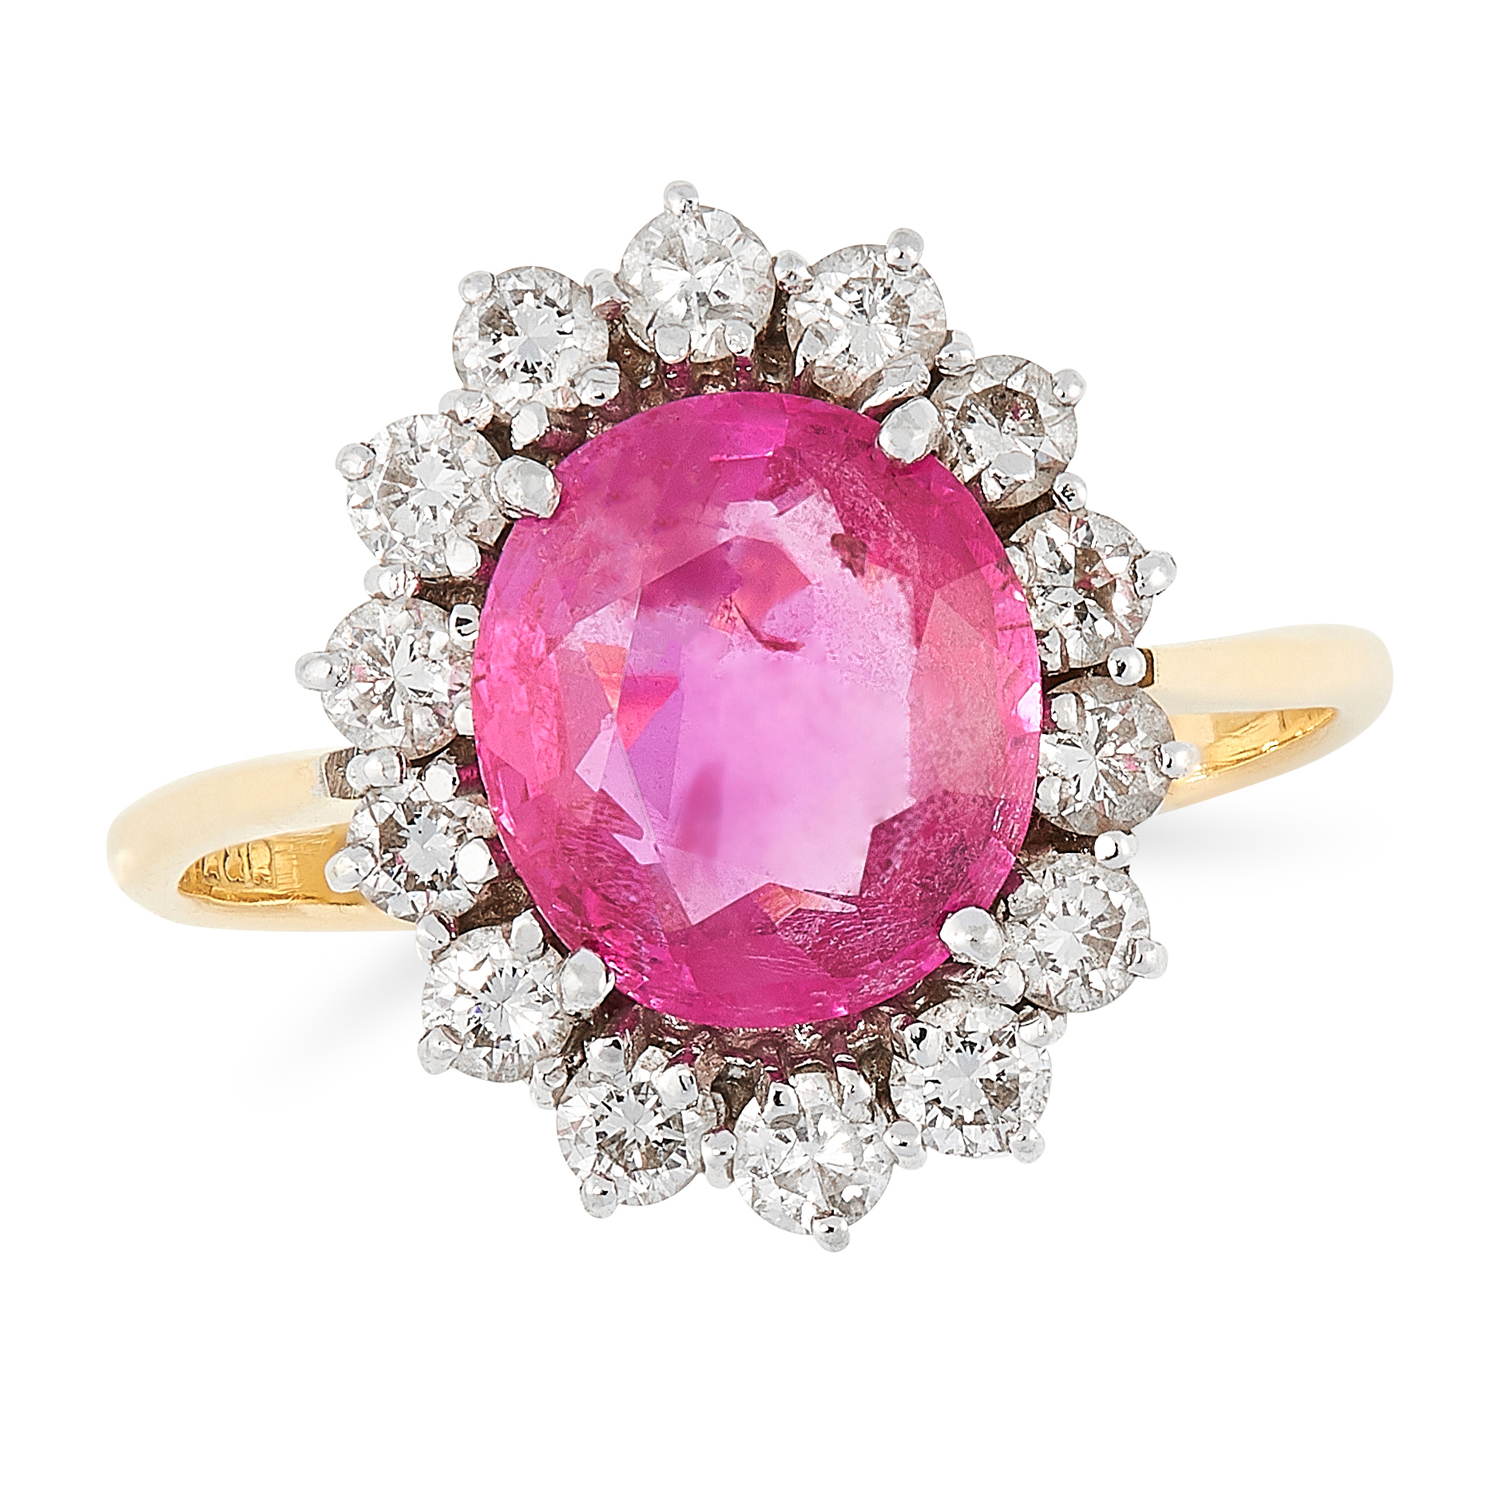 A BURMA NO HEAT PINK SAPPHIRE AND DIAMOND CLUSTER RING set with an oval cut pink sapphire of 1.66